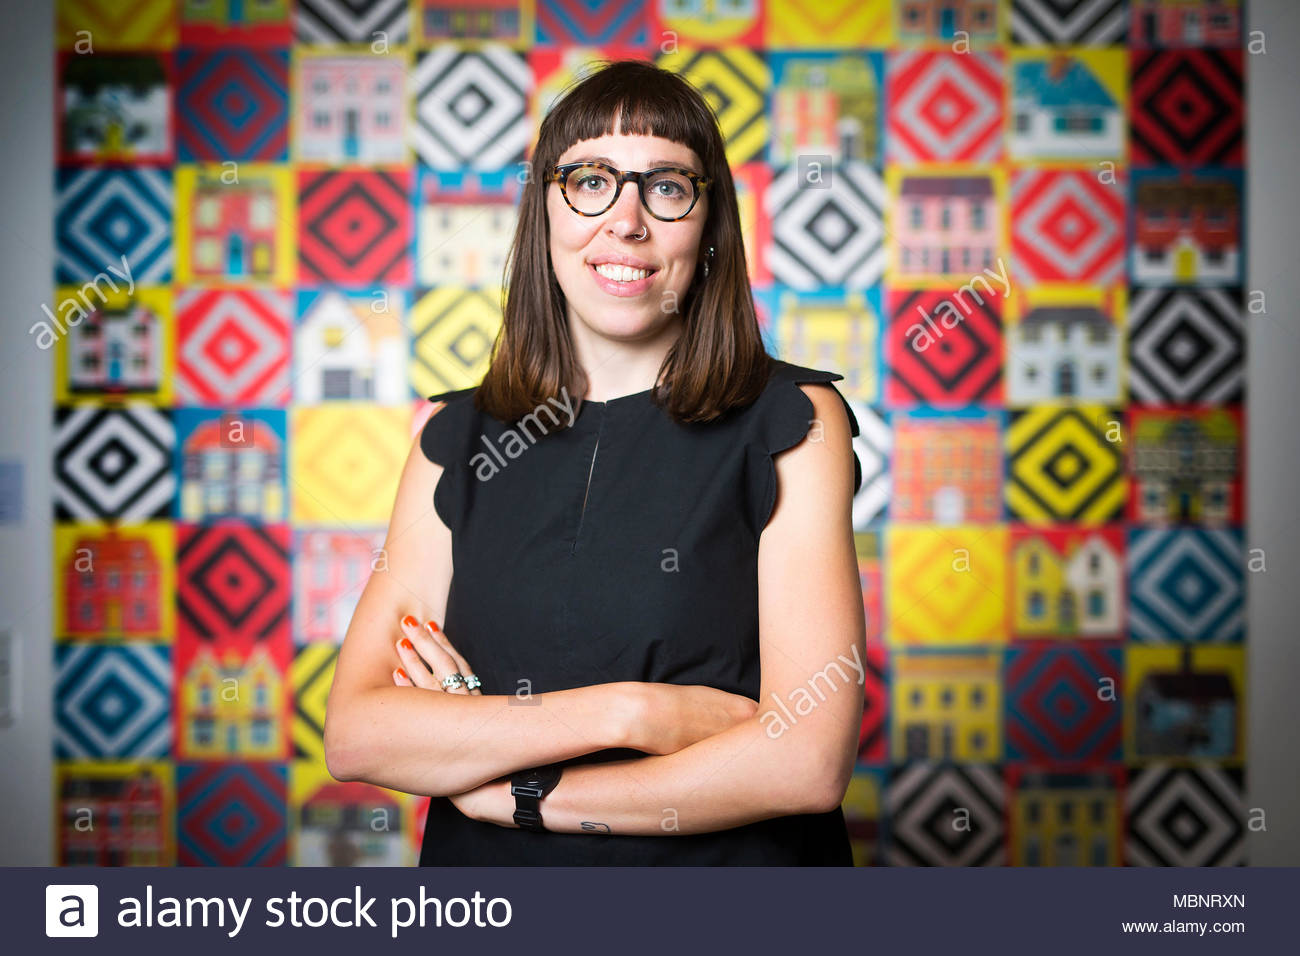 Illustrator Alice Pattullo at the launch of her exhibition 'House & Home' at Yorkshire Sculpture Park - Stock Image